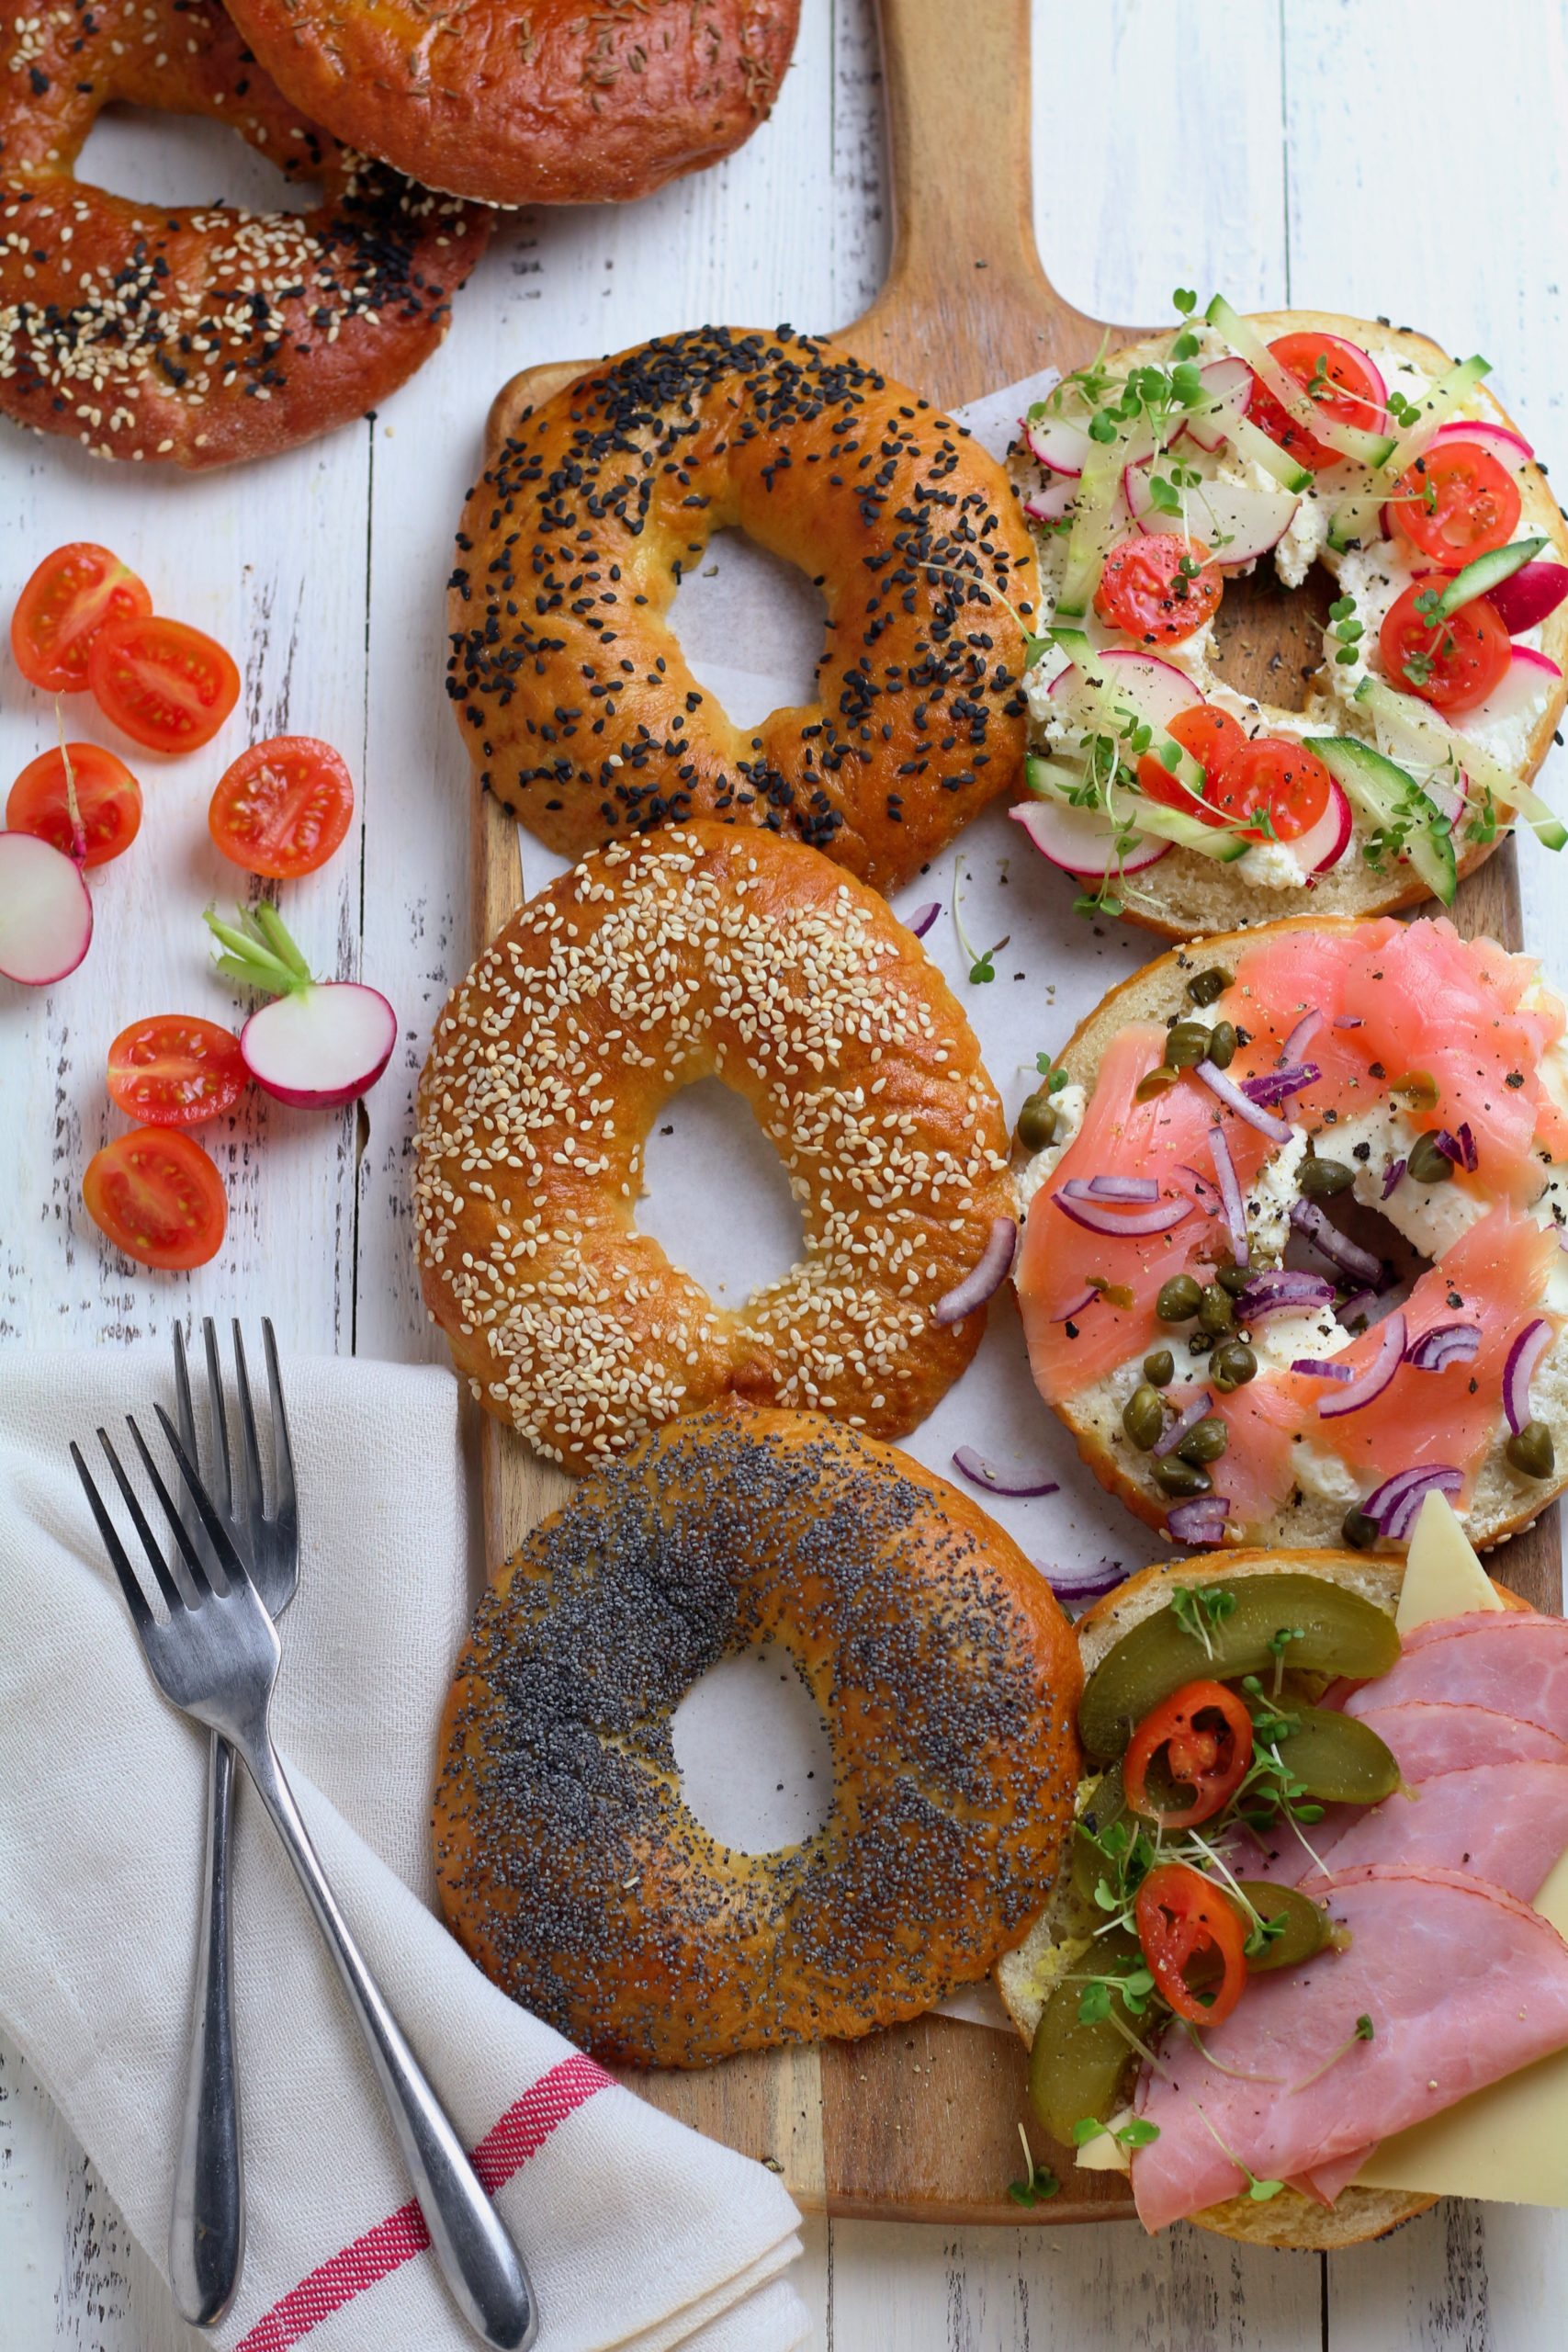 Homemade Sesame Bagels with toppings